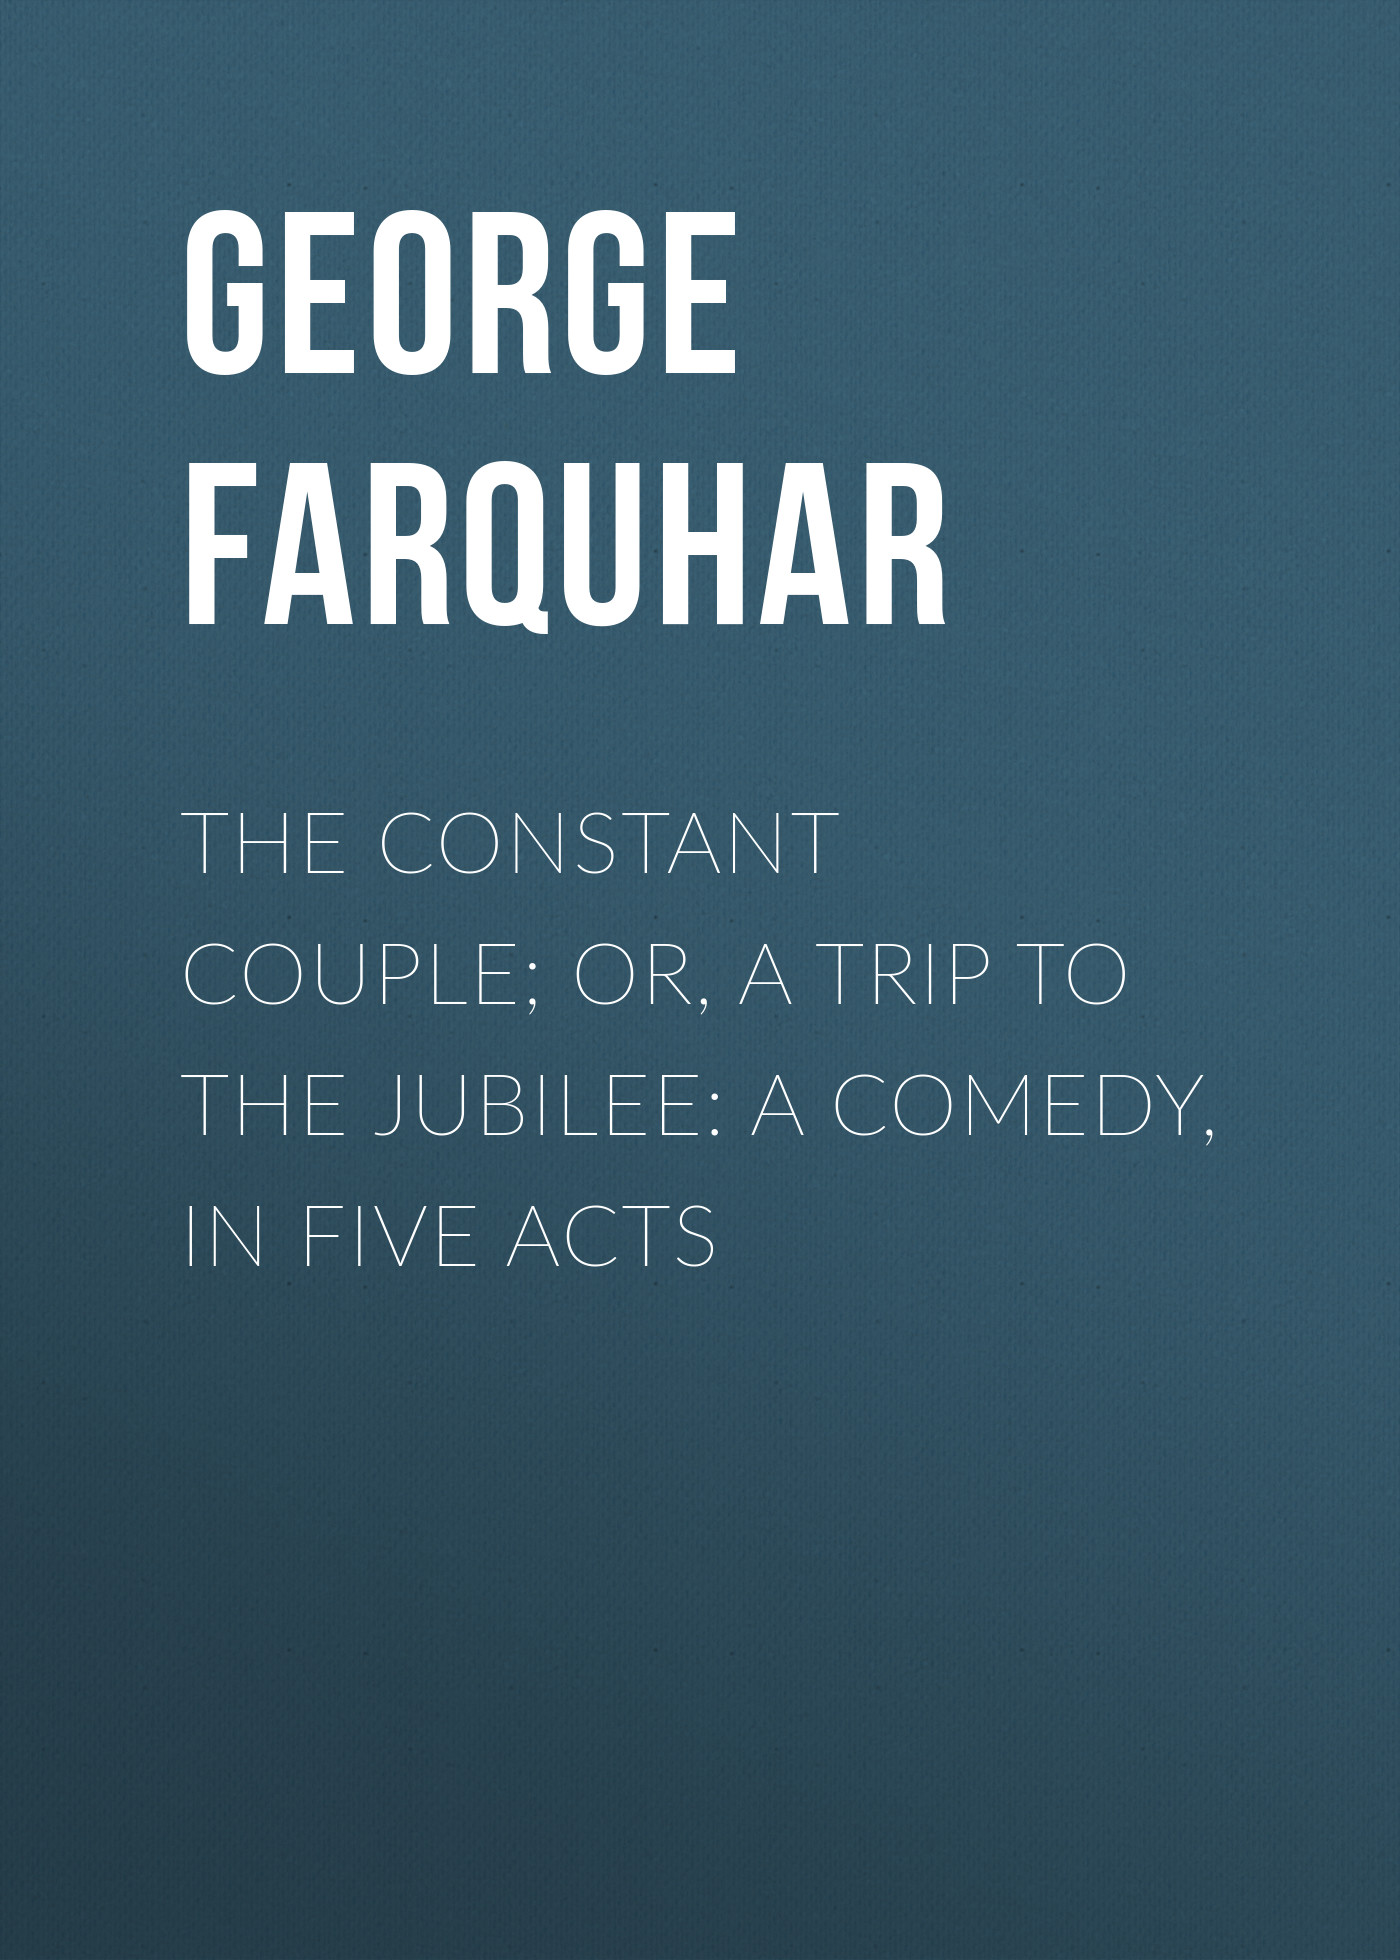 George Farquhar The Constant Couple; Or, A Trip to the Jubilee: A Comedy, in Five Acts the comedy about a bank robbery london